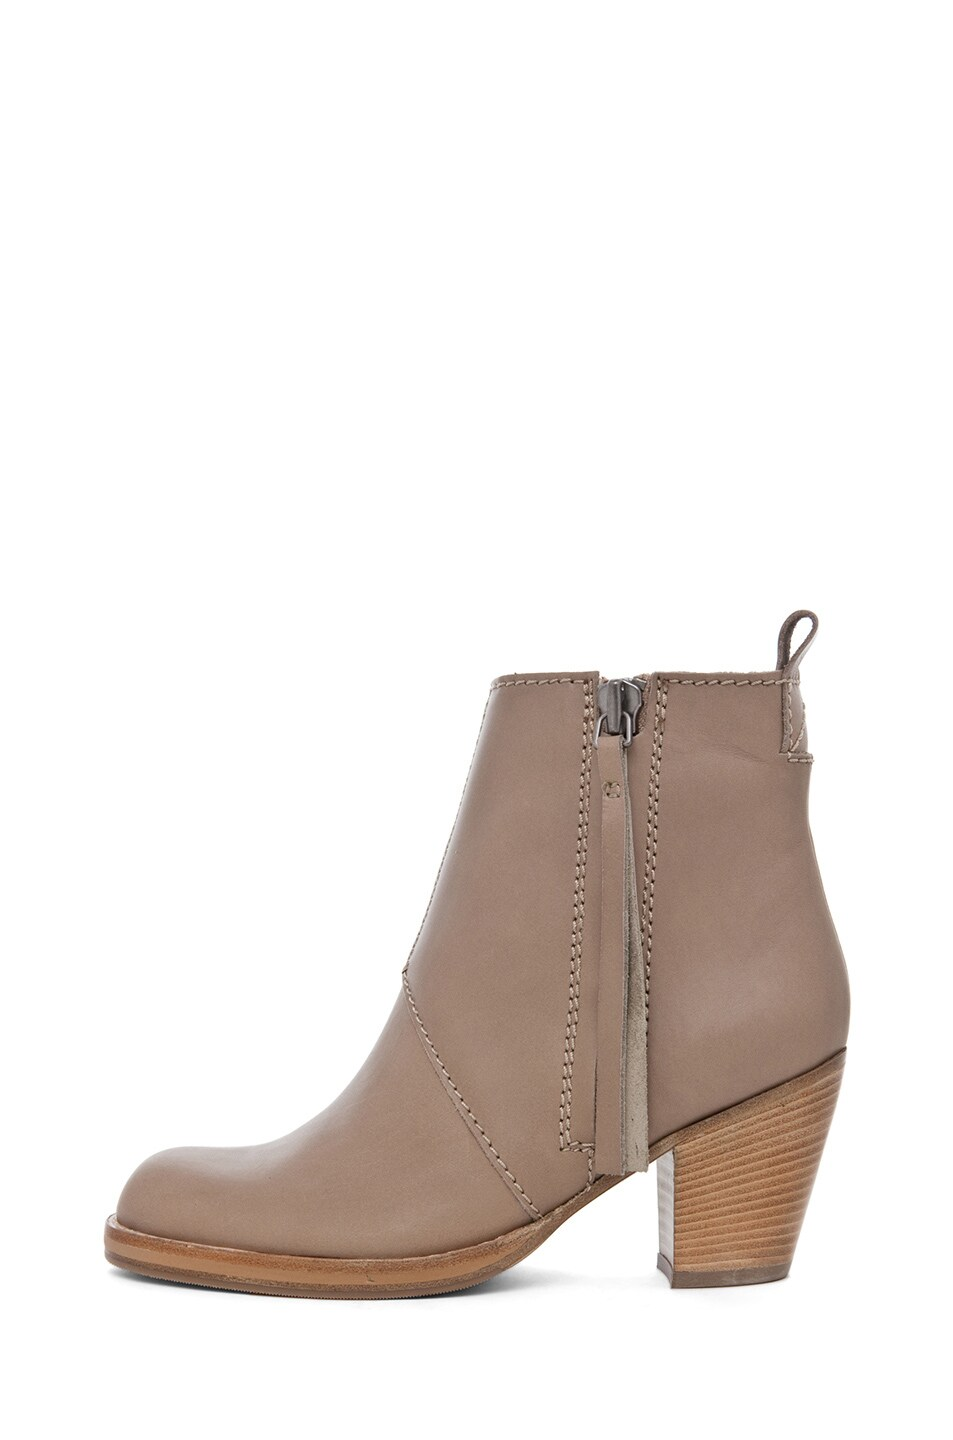 Image 1 of Acne Studios Pistol Leather Bootie in Coffee